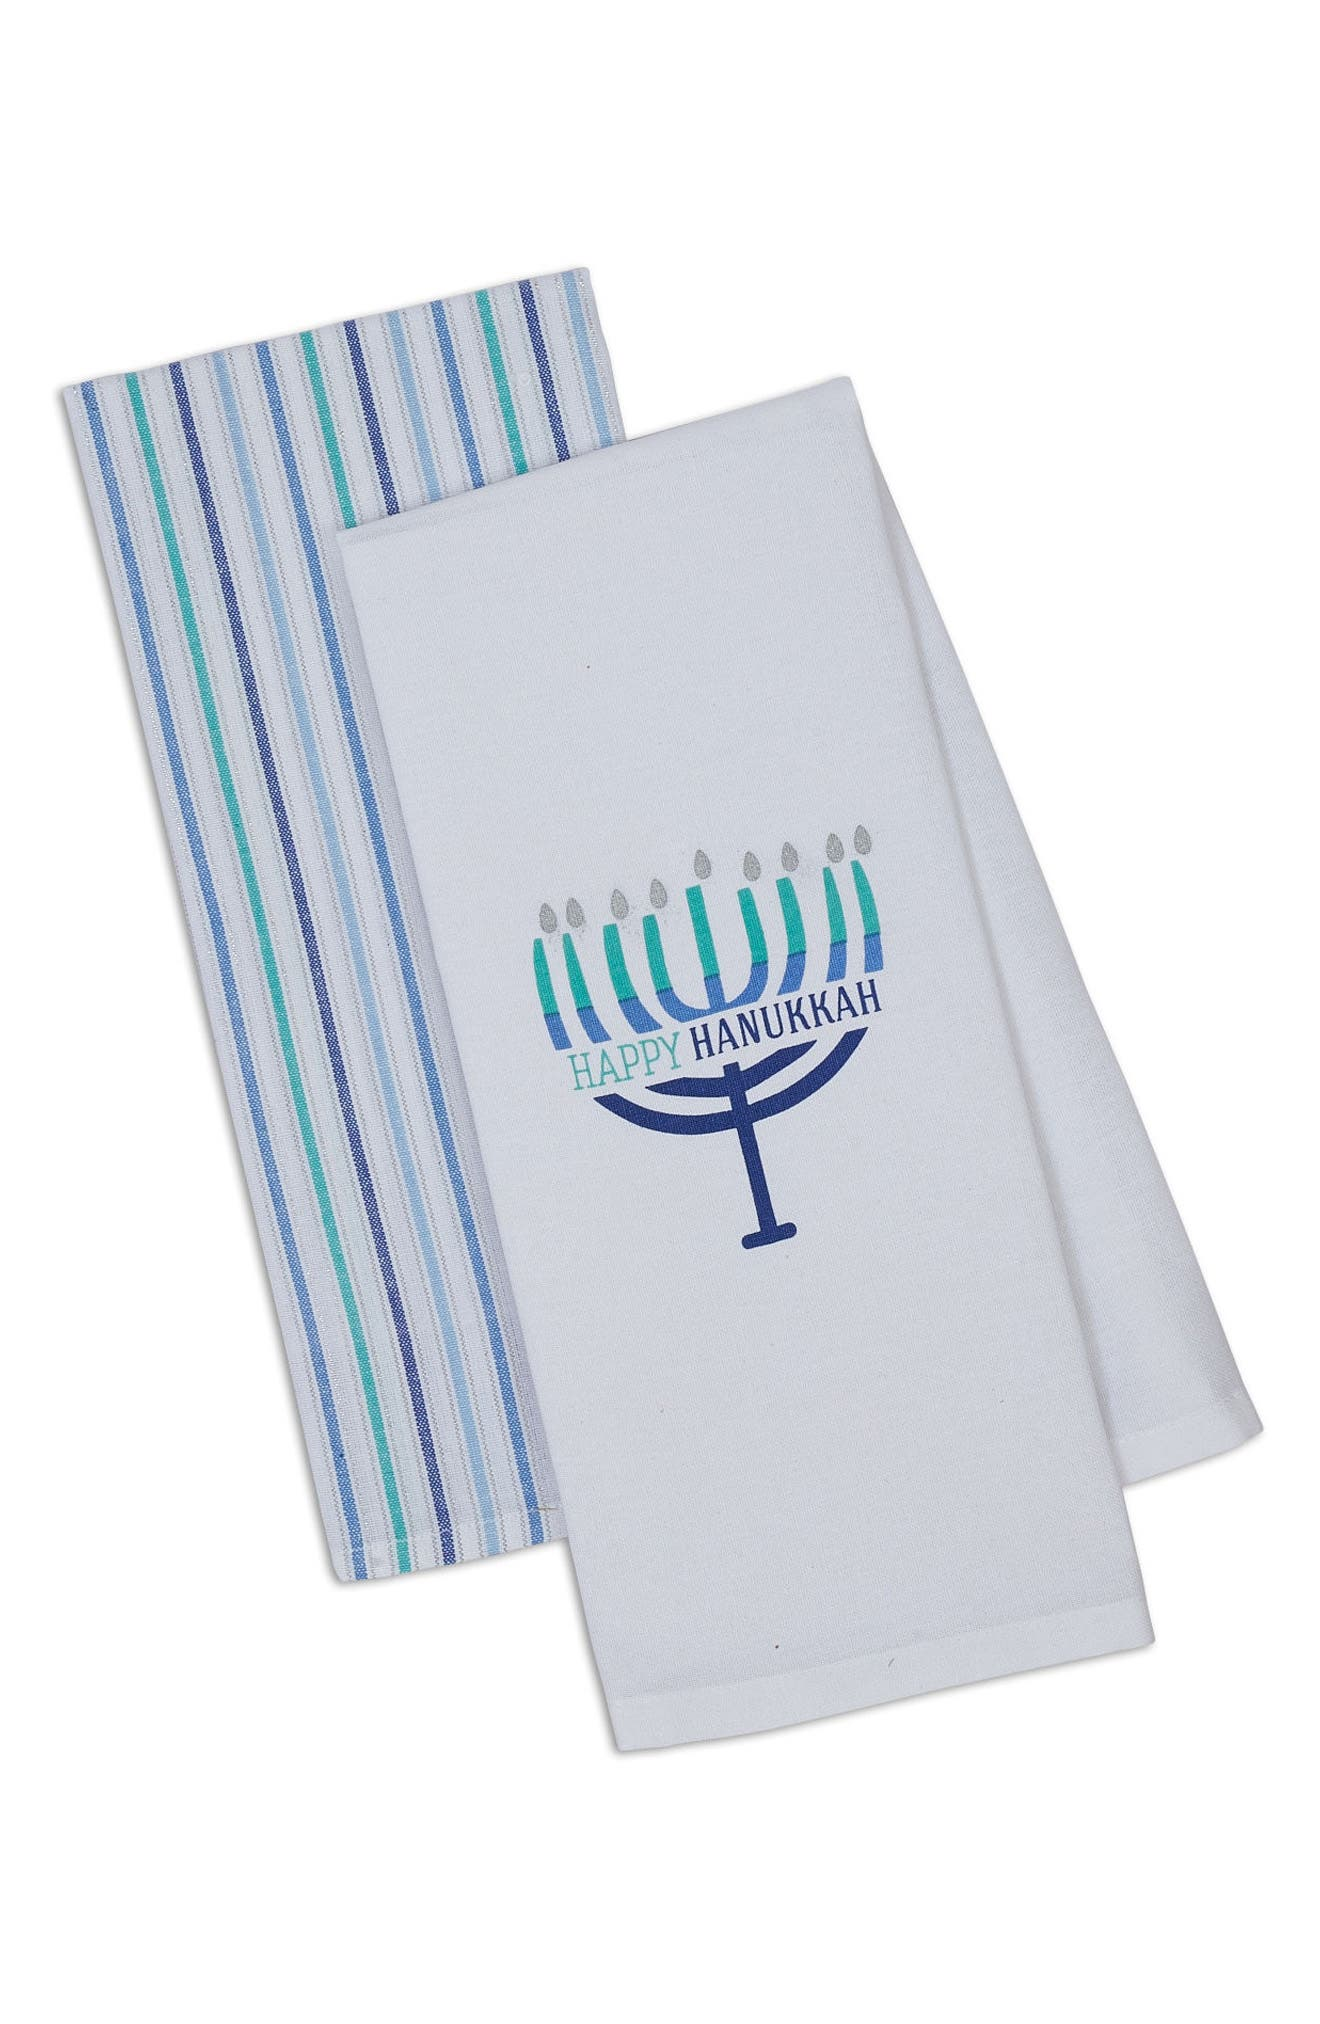 Main Image - Design Imports Happy Hanukkah Set of 2 Dish Towels